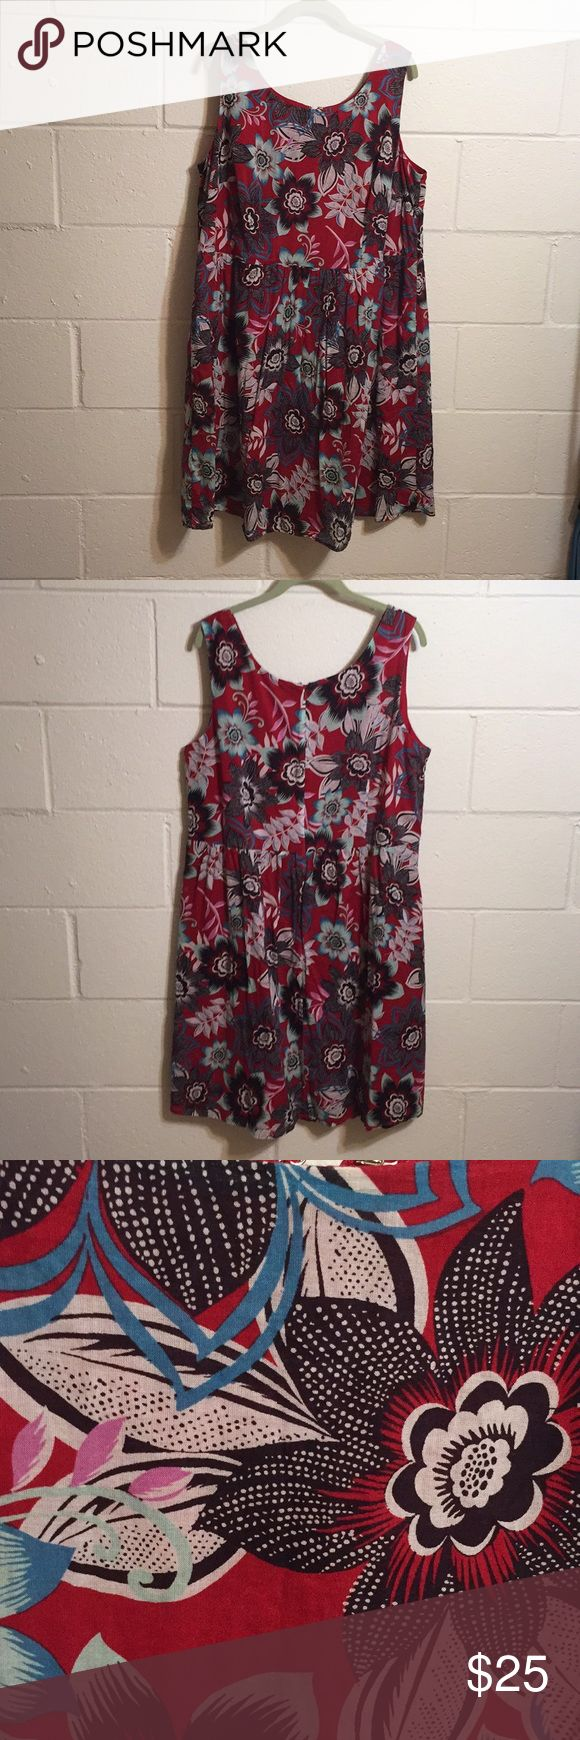 "TALBOTS Bold Floral Cotton Dress Sleeveless. Fully lined. Babydoll style. Back Zipper. Bra holder snaps. 24"" bust across, 42"" length. EUC Talbots Dresses"